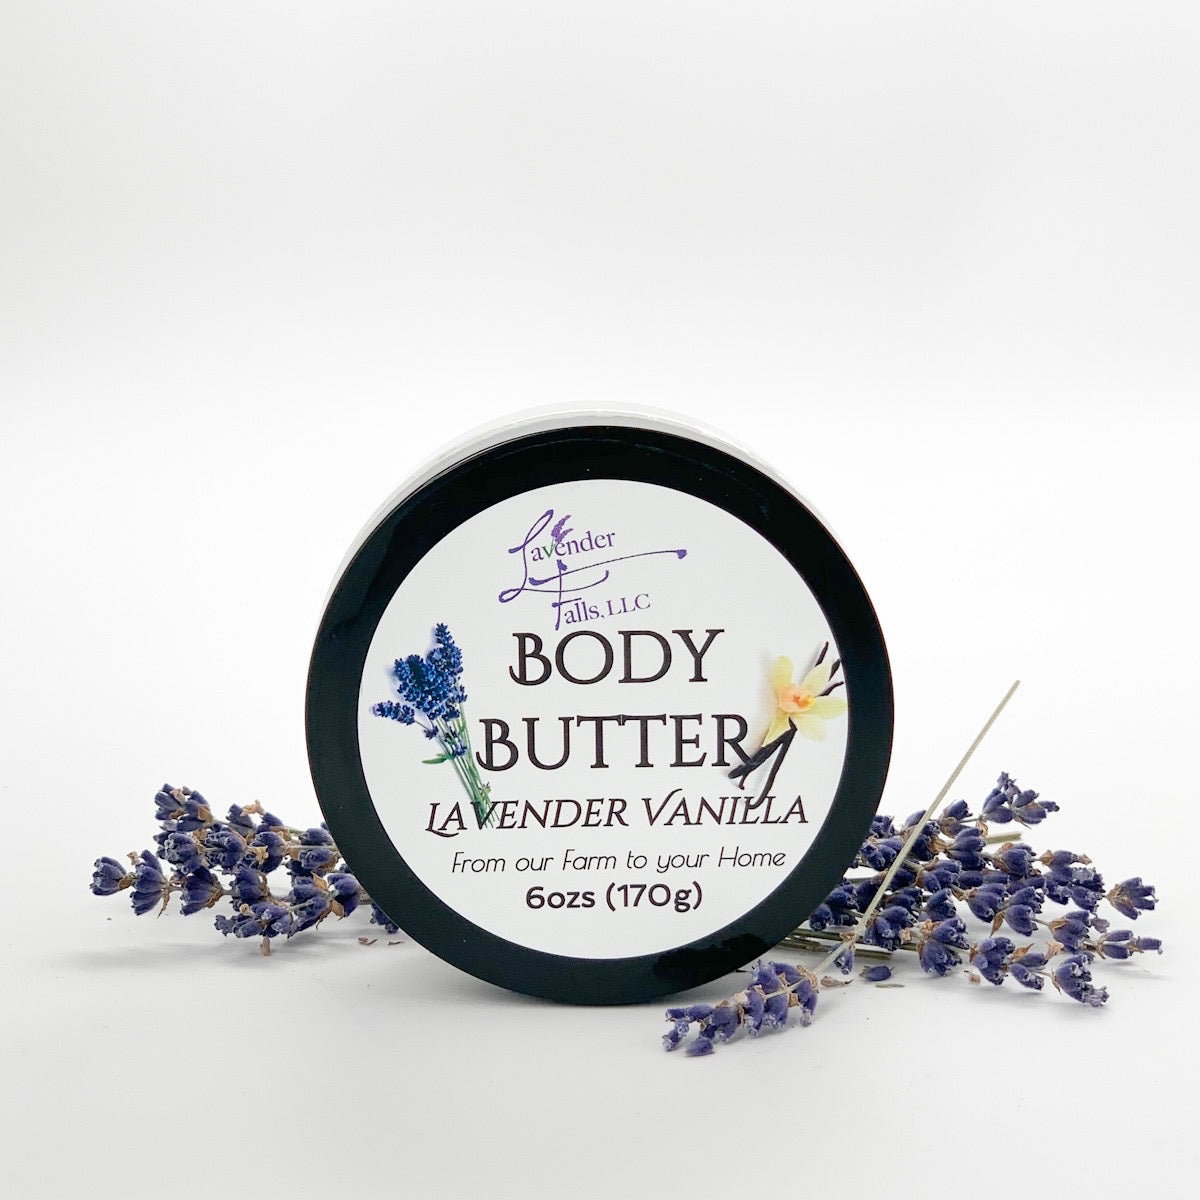 All Natural Body Butter Lavender Vanilla